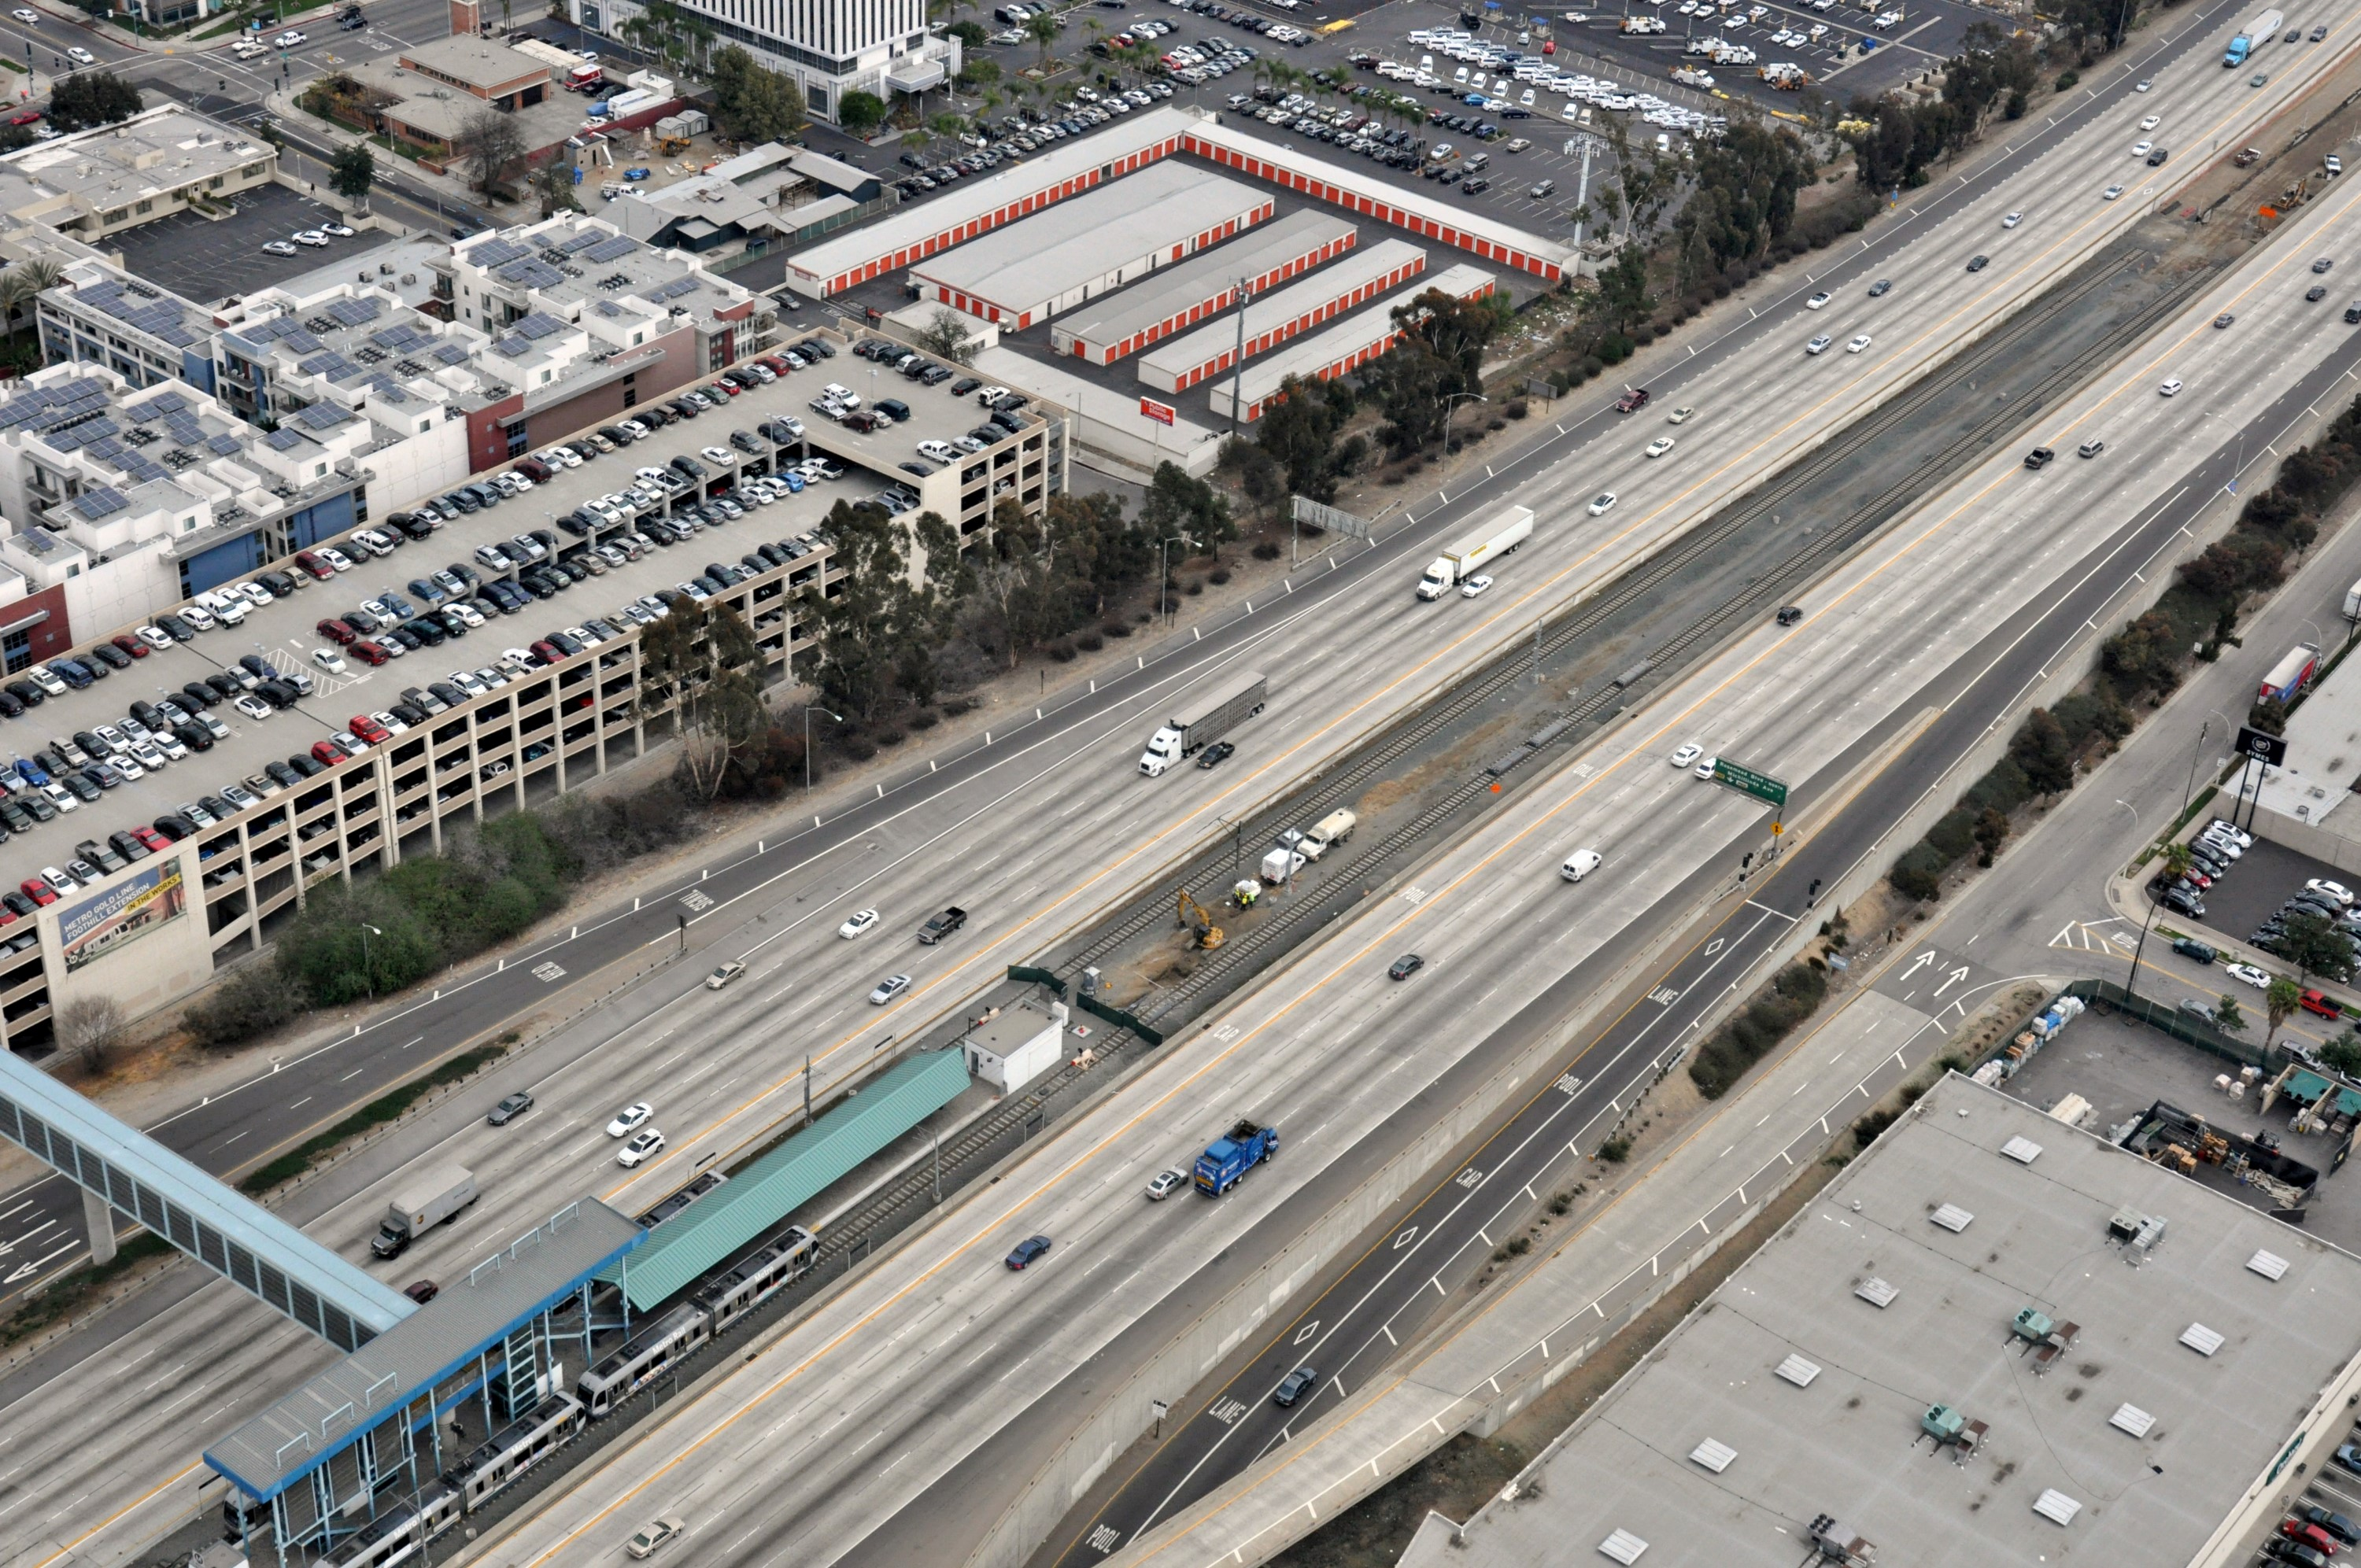 Pasadena to Azusa 50% Completion Photo Gallery | Foothill